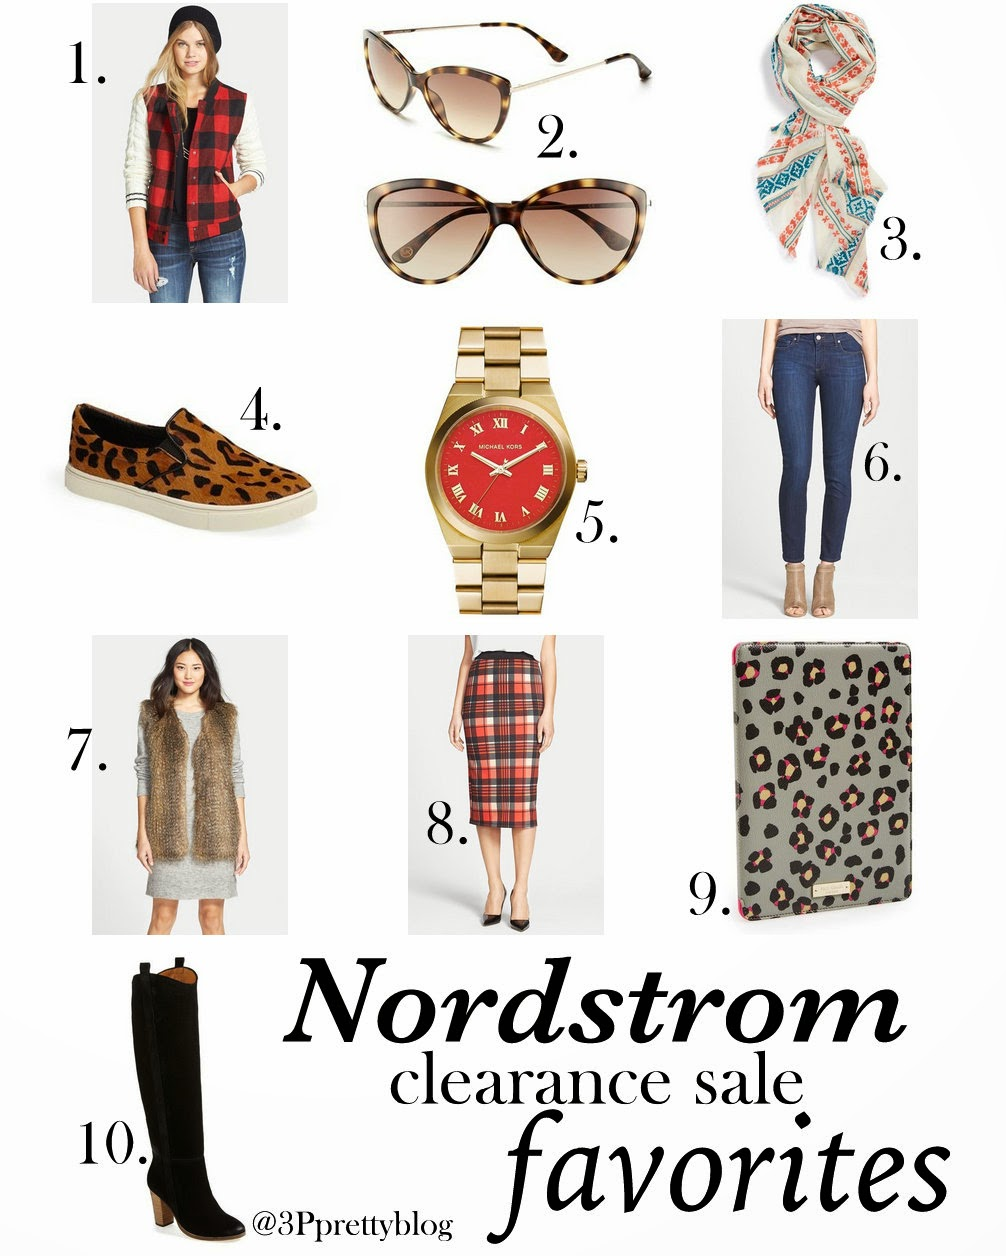 Nordstrom Clearance Sale Favorites